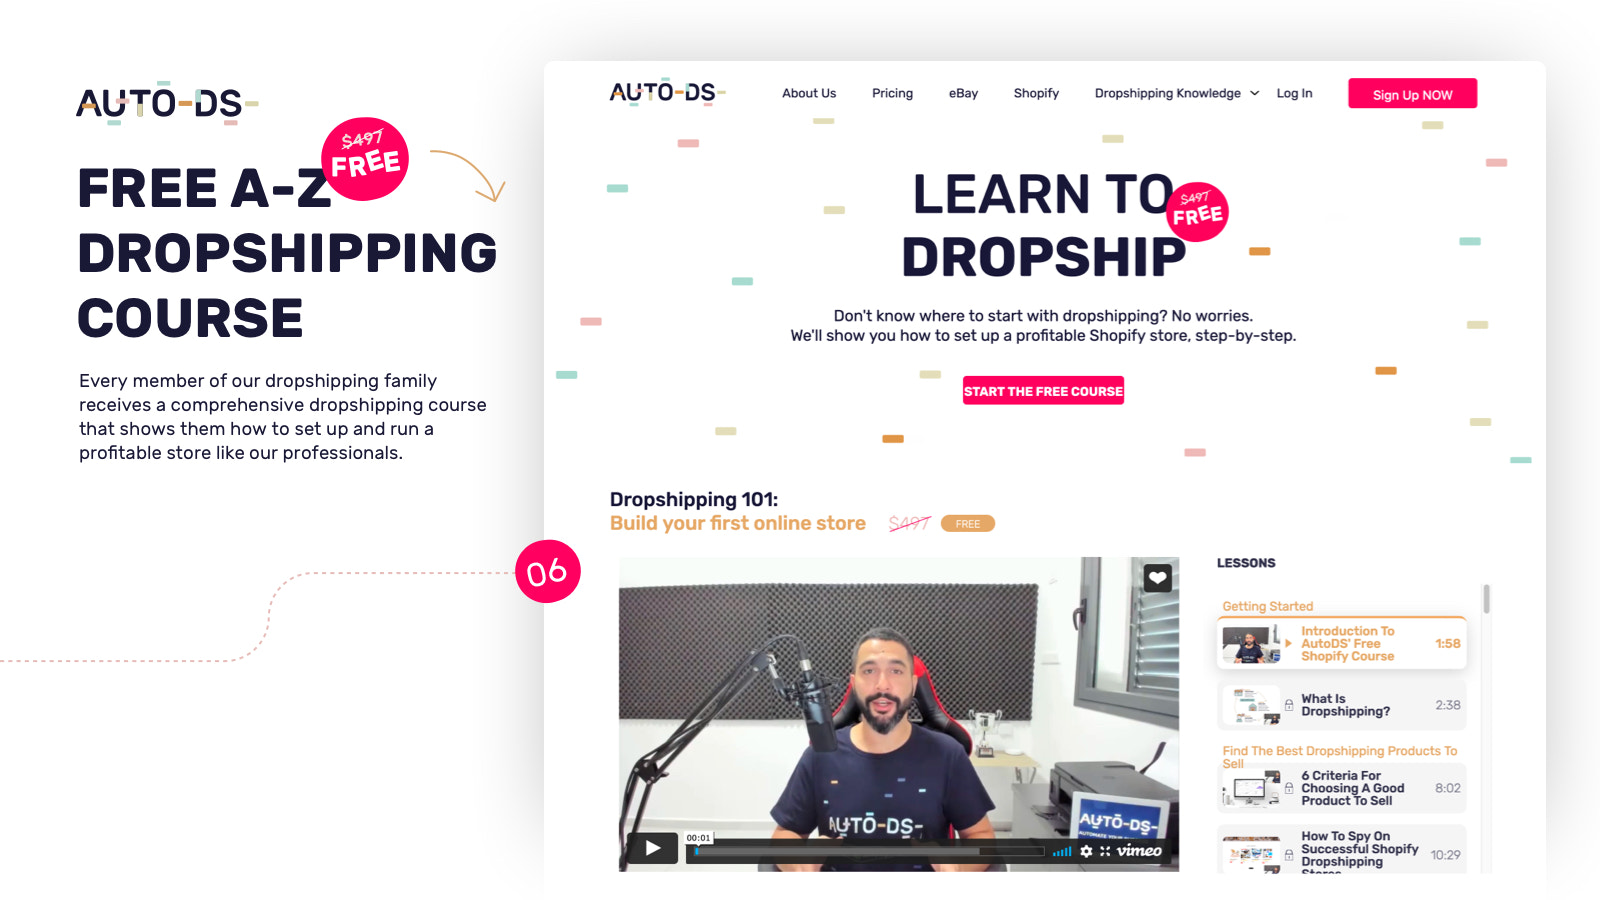 Free Shopify dropshipping course